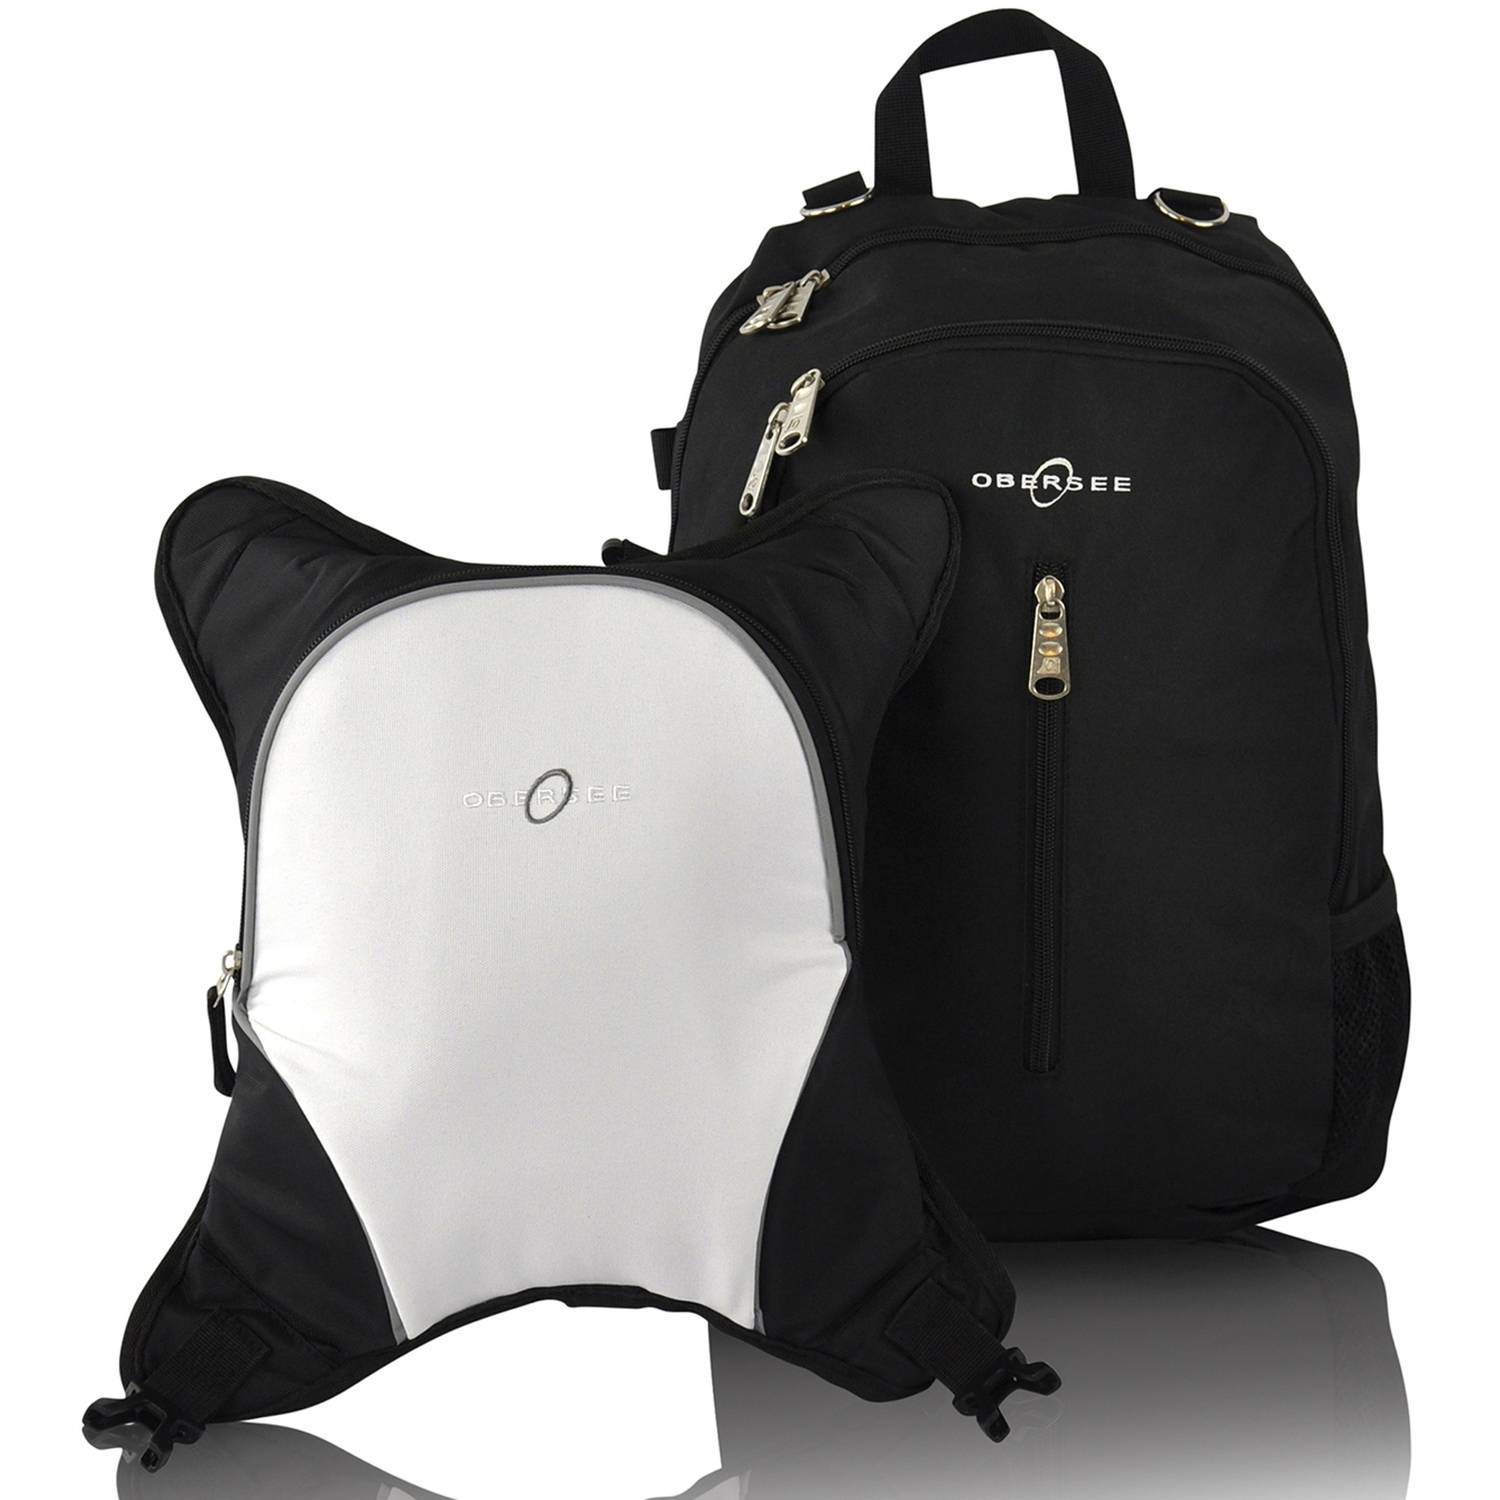 Obersee Rio Diaper Bag Backpack with Detachable Cooler, Black/White